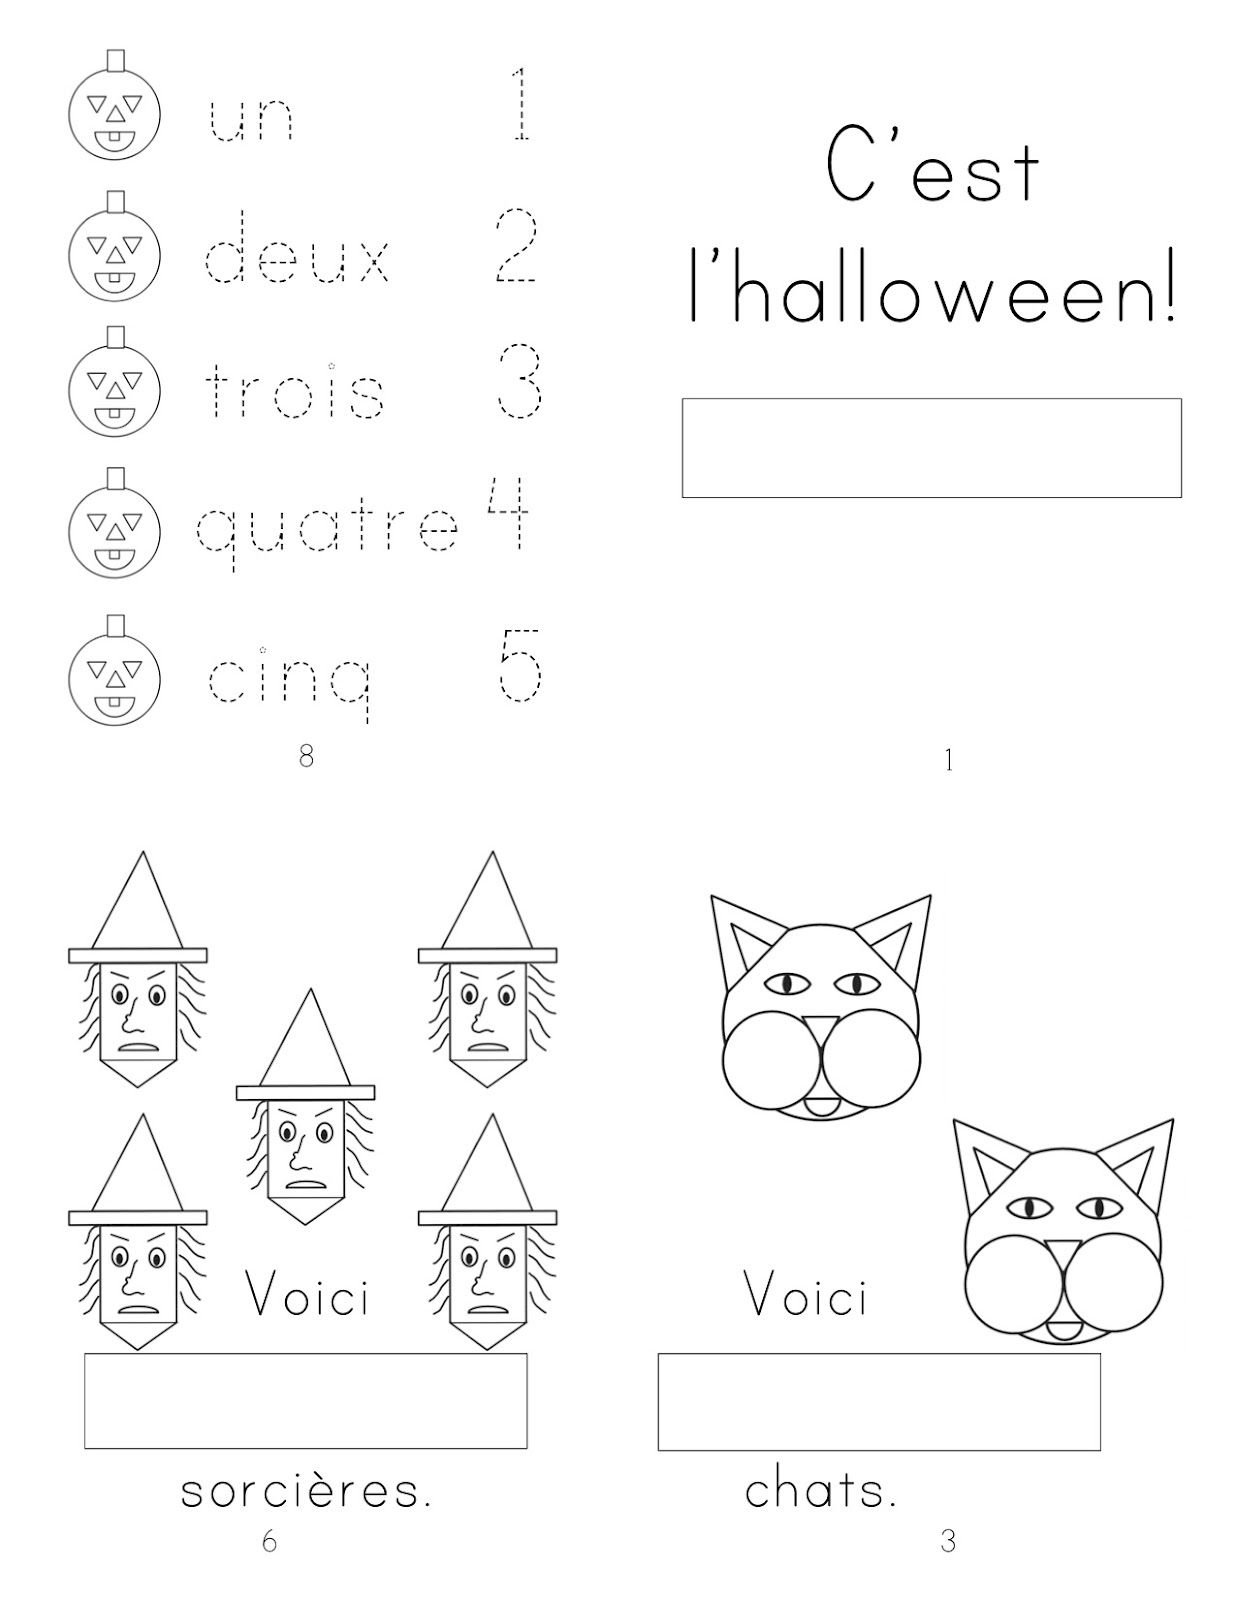 french halloween mini book for students to complete number words automne formes halloween. Black Bedroom Furniture Sets. Home Design Ideas